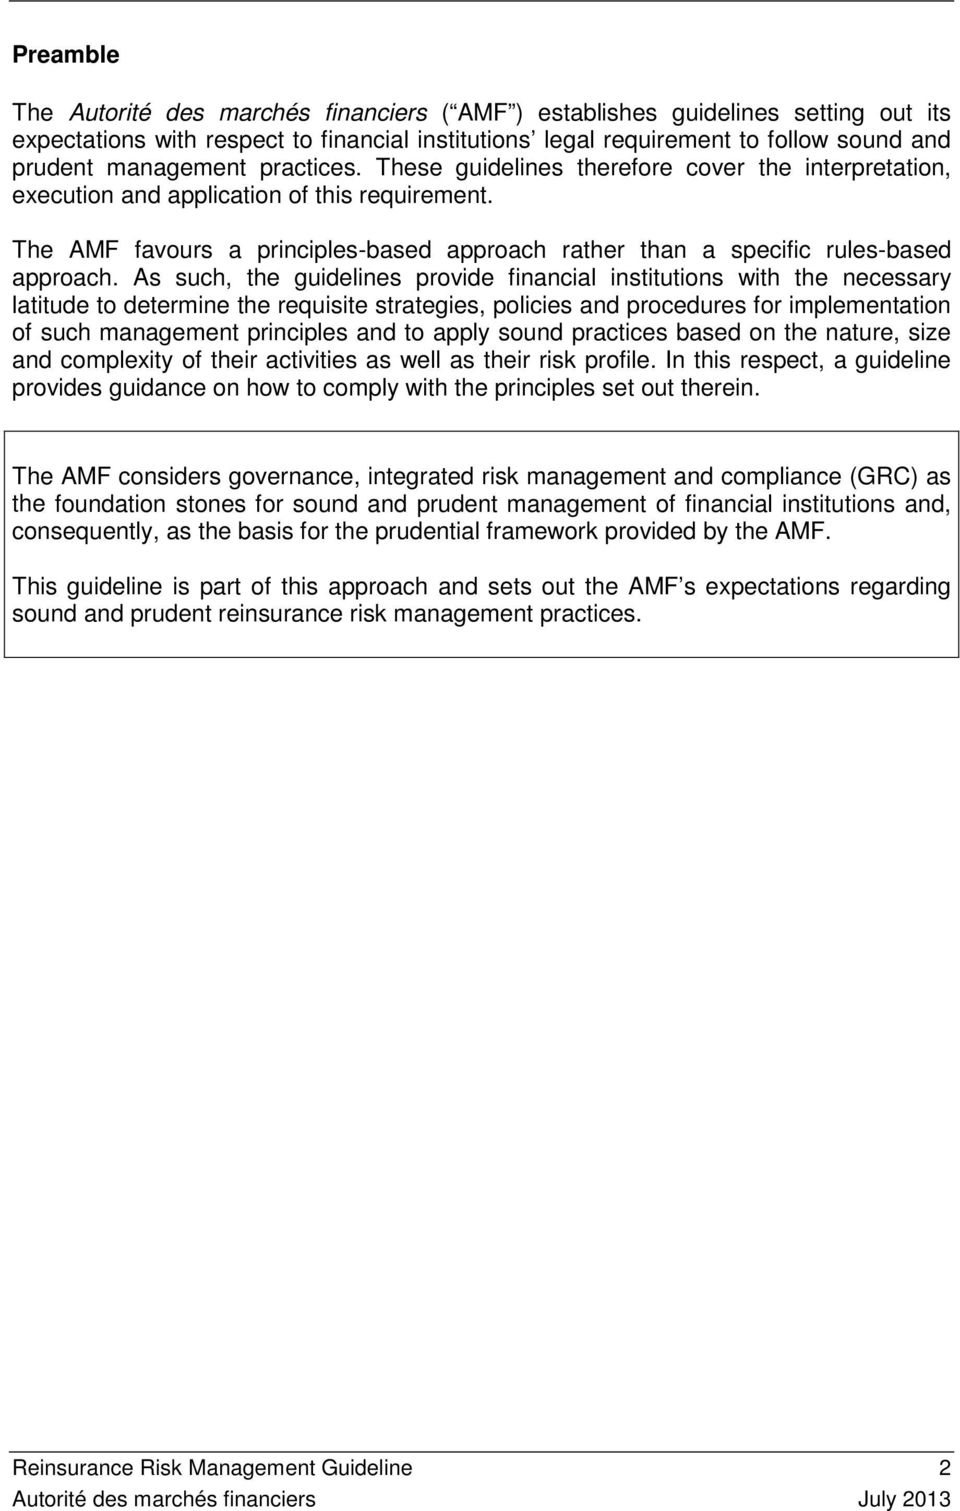 The AMF favours a principles-based approach rather than a specific rules-based approach.